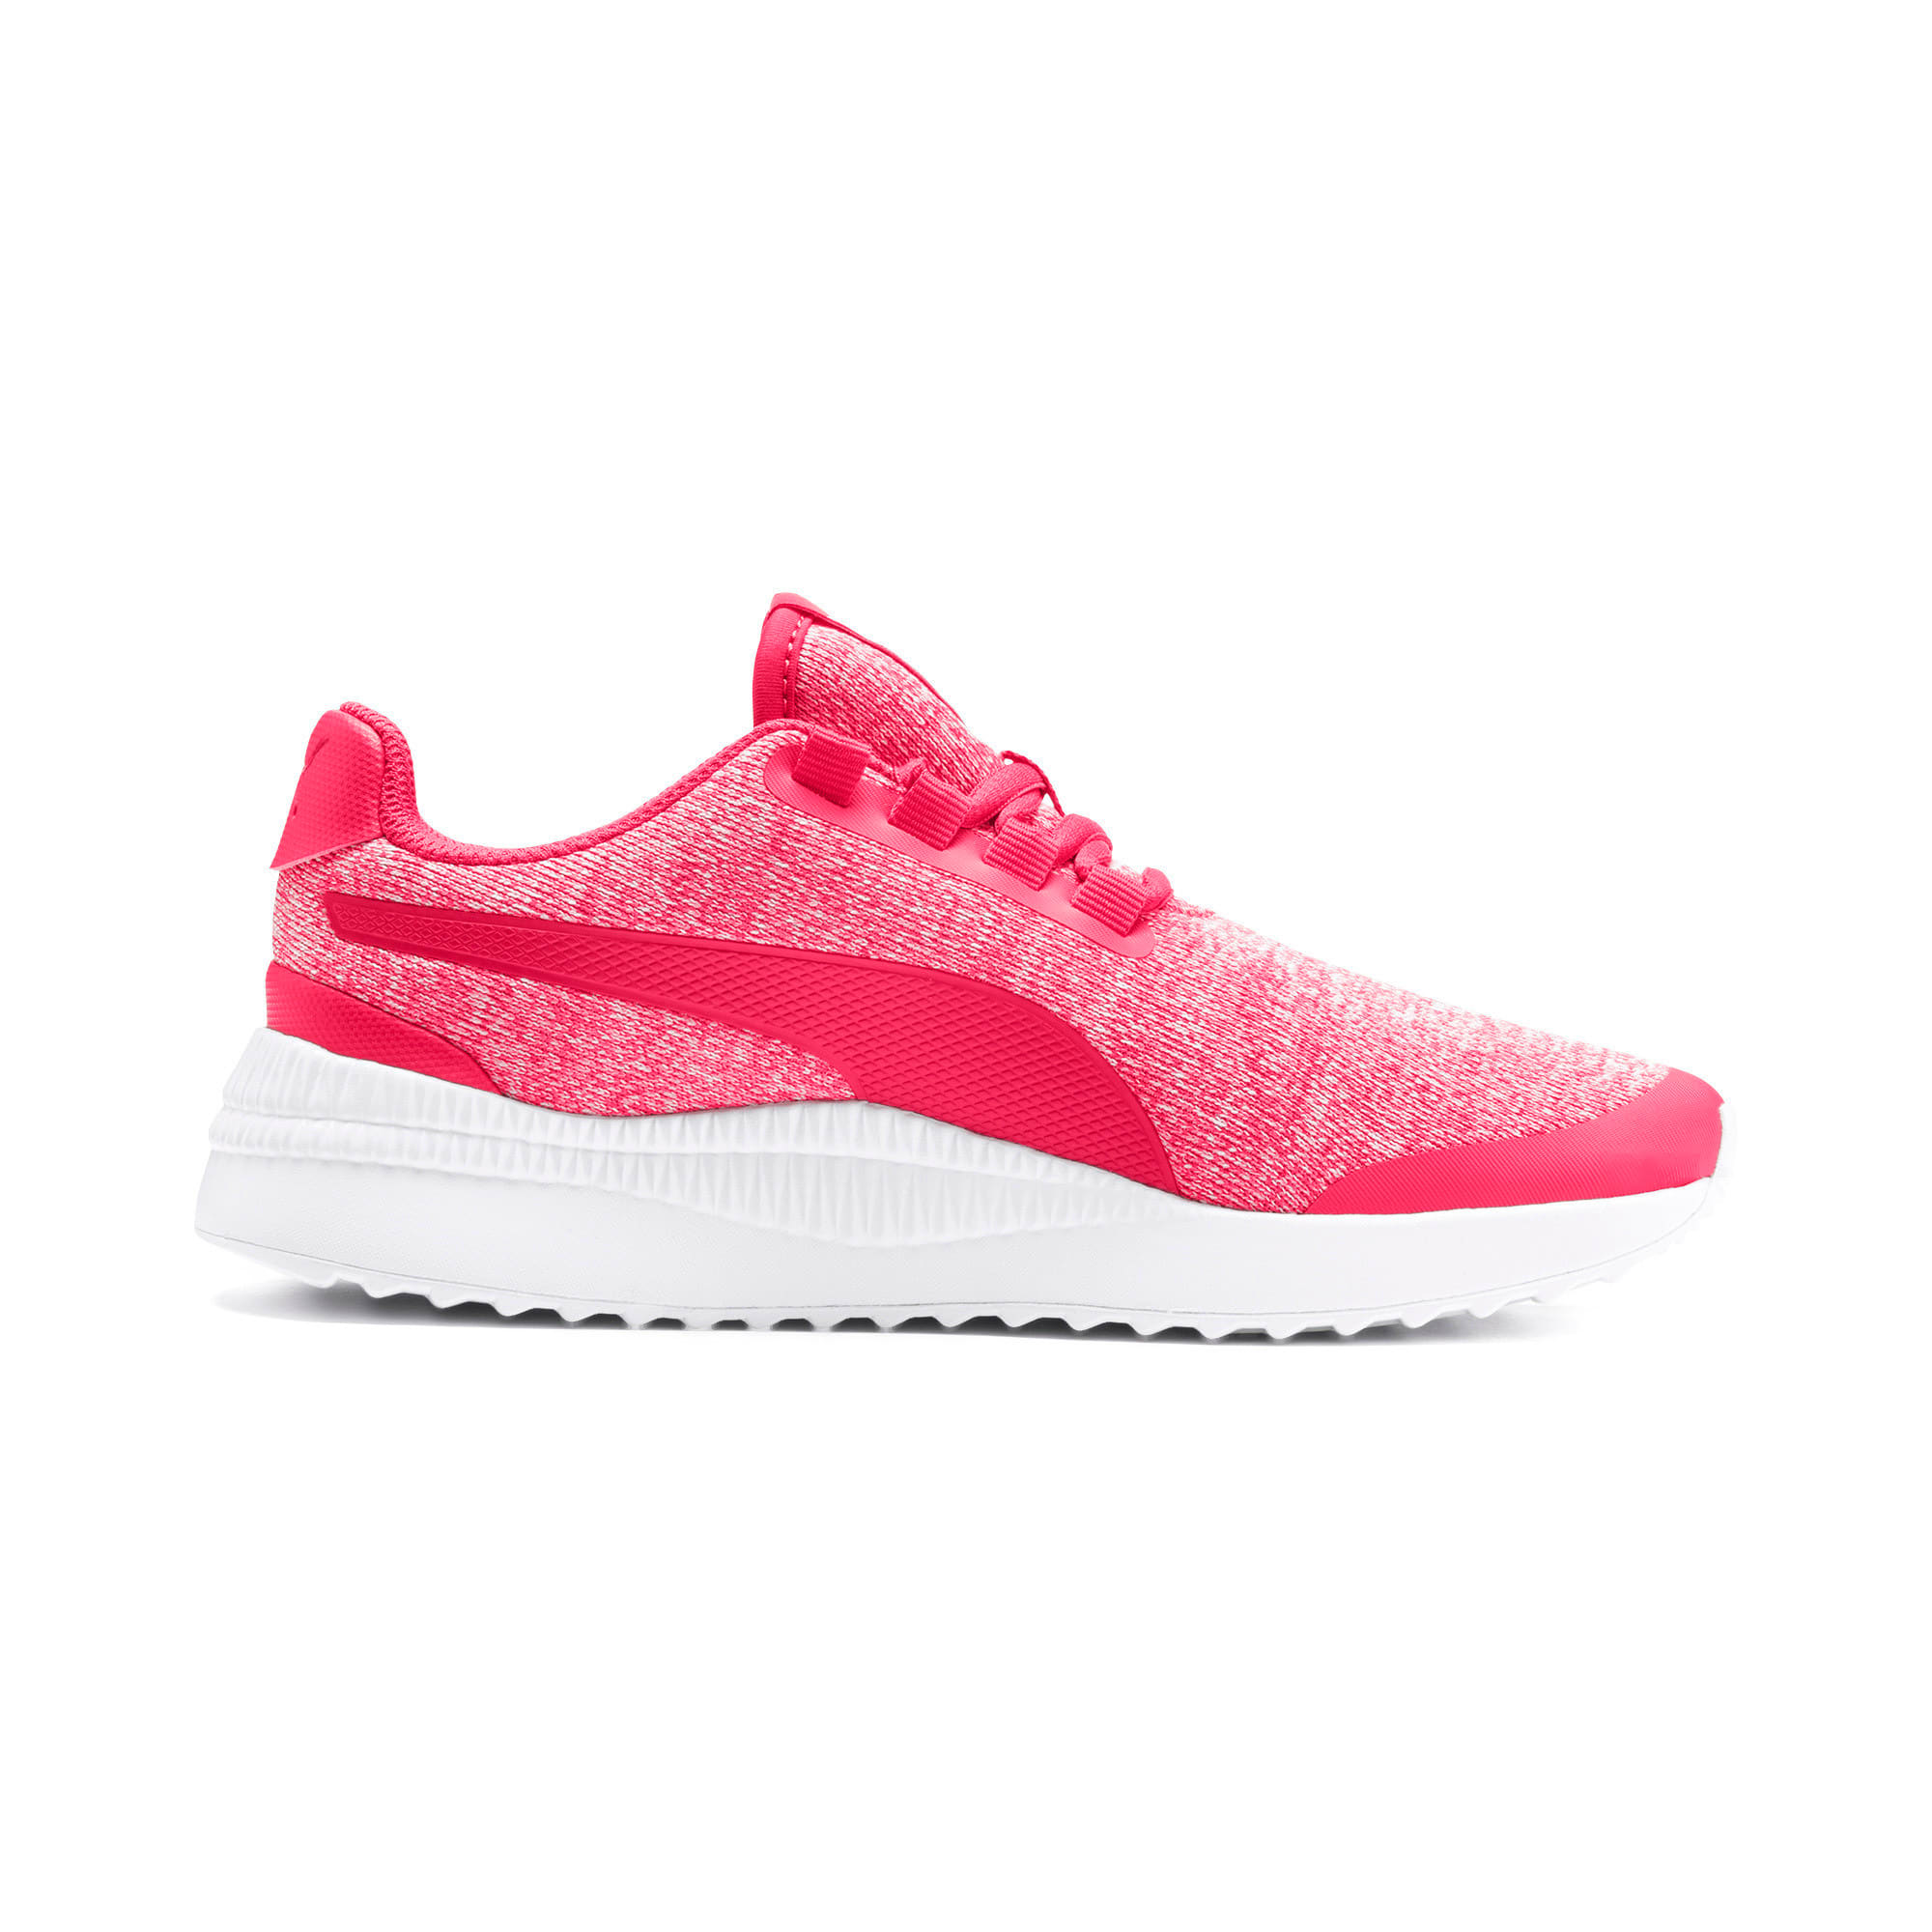 Thumbnail 5 of Pacer Next FS Knit Kinder Sneaker, Nrgy Rose-Puma White, medium